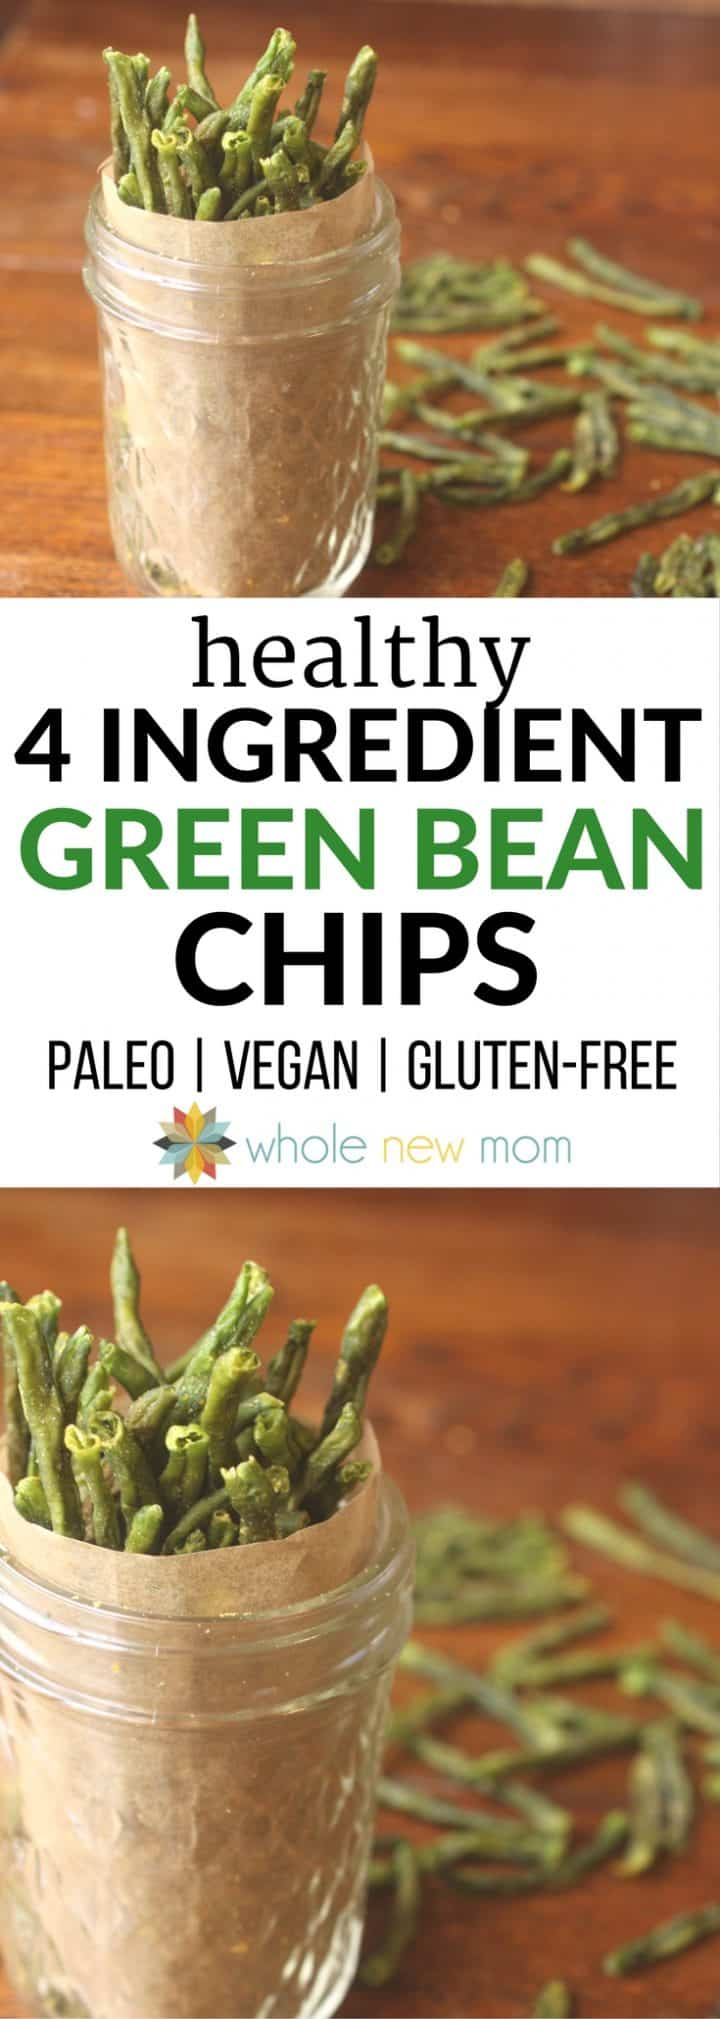 Looking for a healthy snack? This Addictive Green Bean Chips recipe is super easy and they are so much healthier than the store bought veggie chips. Skip the GMO canola oil from the packaged veggie chips and make these instead.